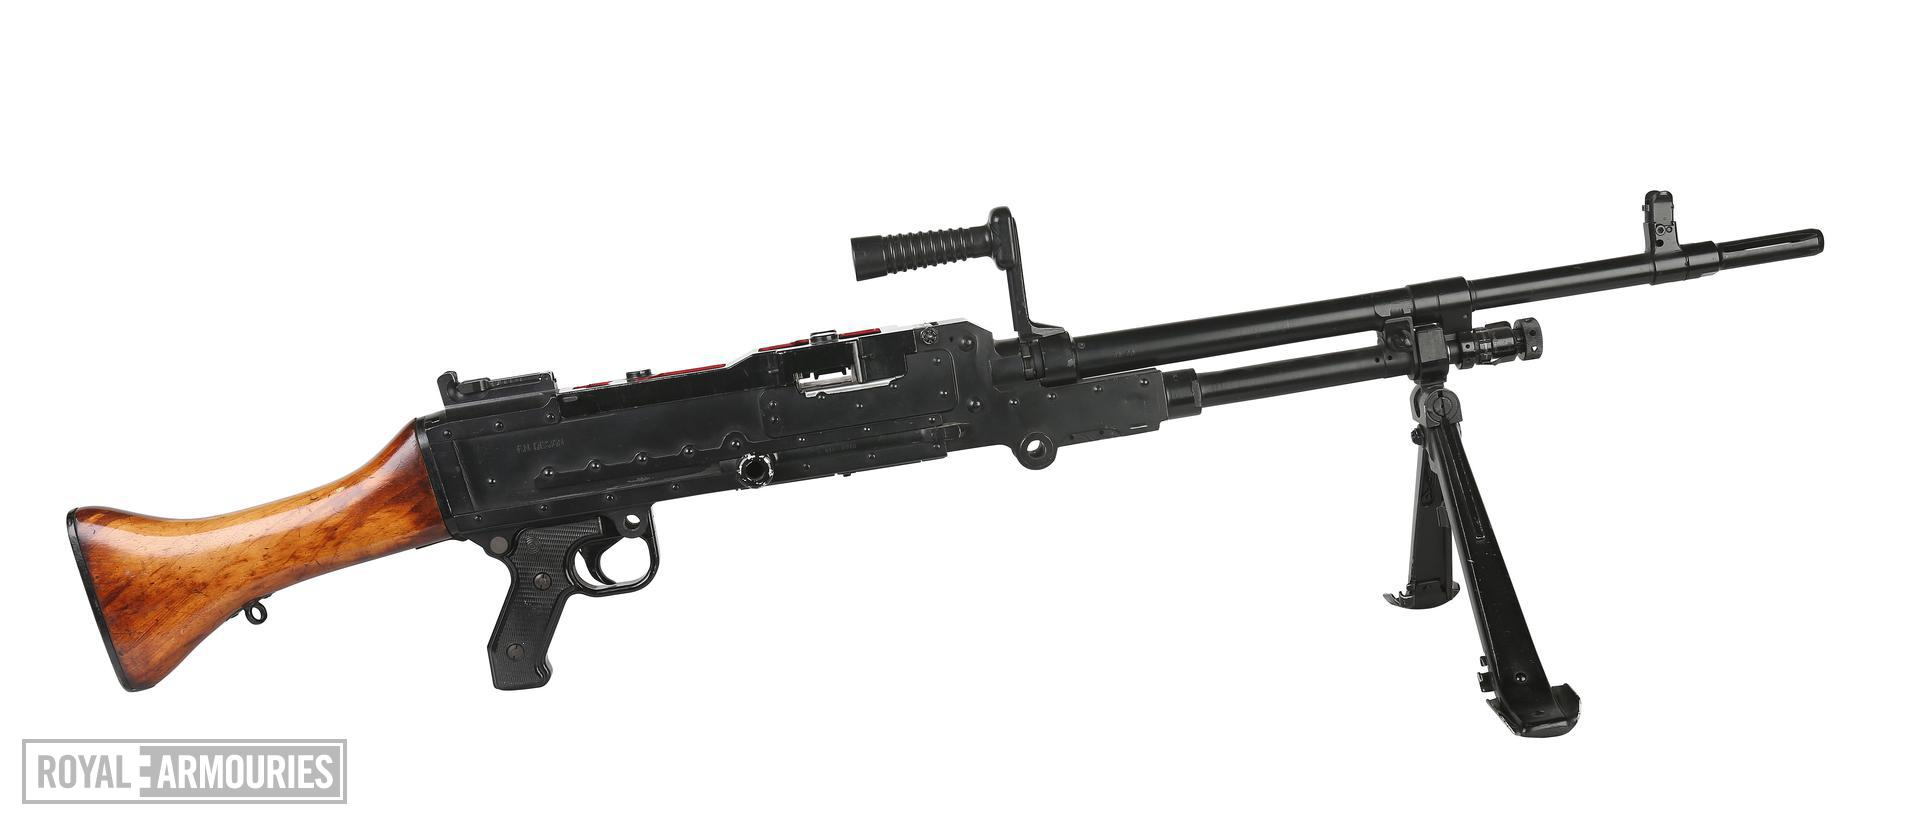 Centrefire automatic machine gun - GPMG FN L7A1 Skeleton